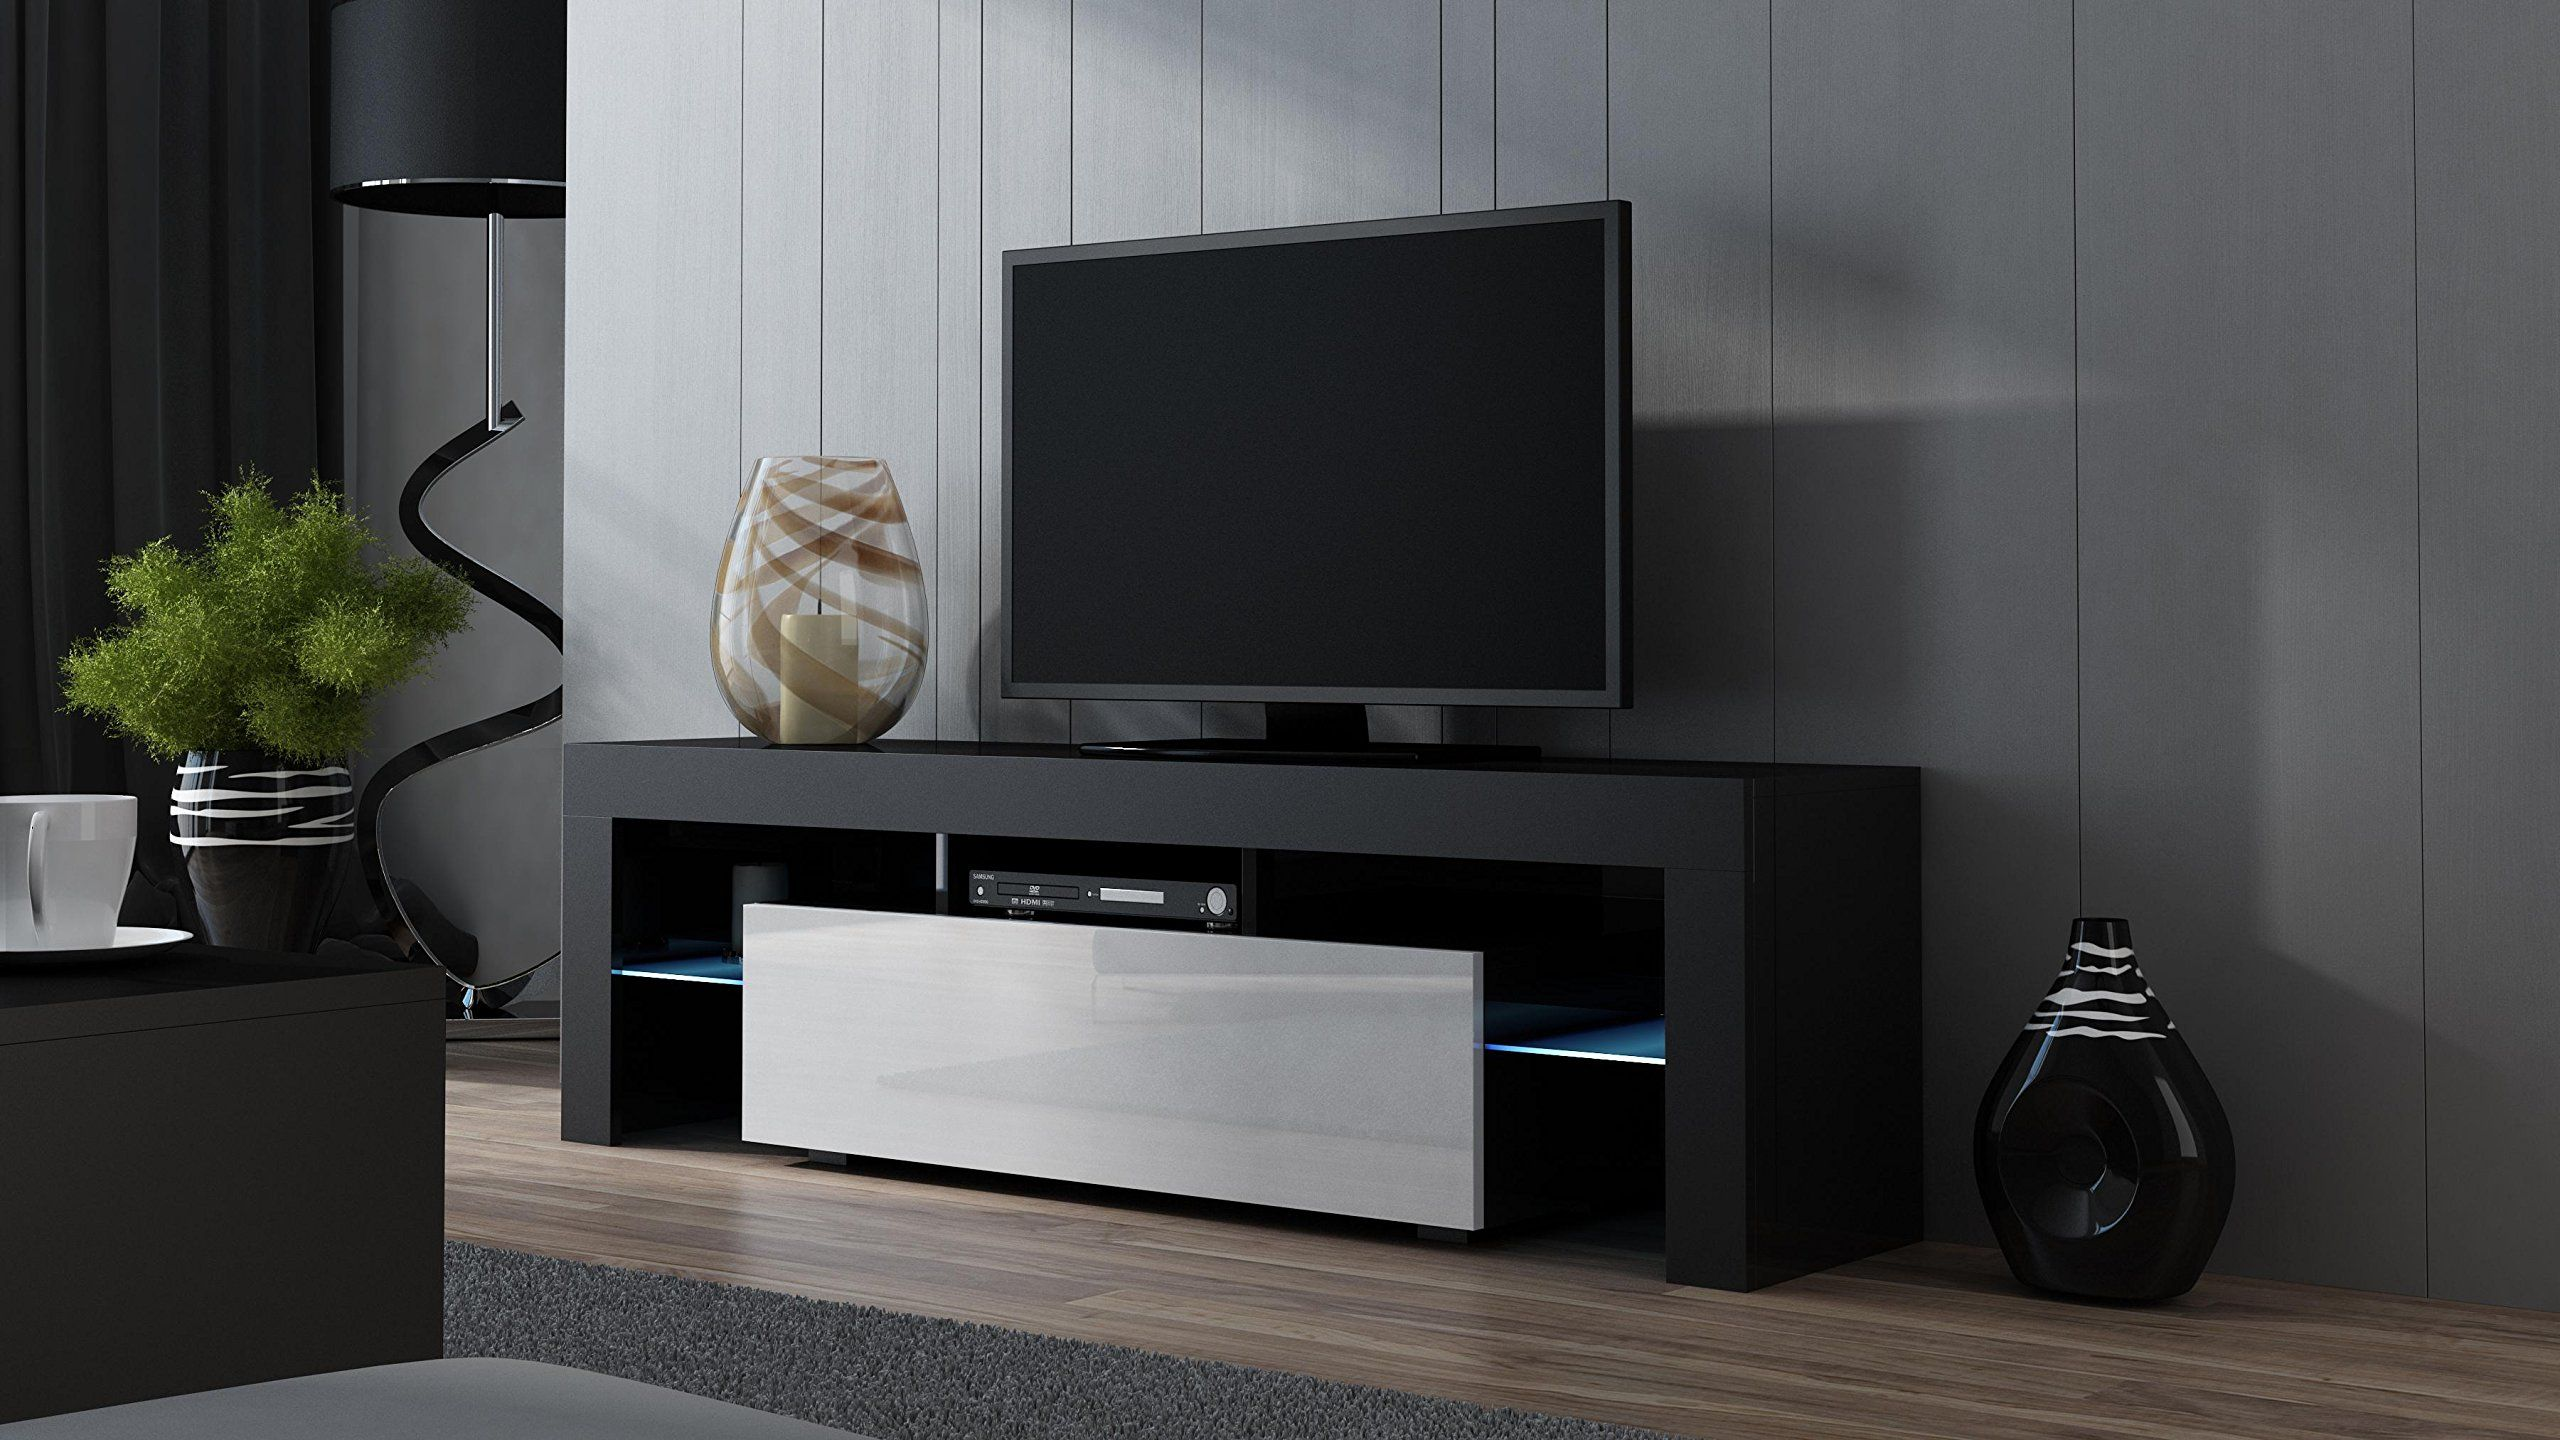 Tv Stand Milano 160 Black Tv Cabinet With Leds Living Room  # Meuble Tv Milano